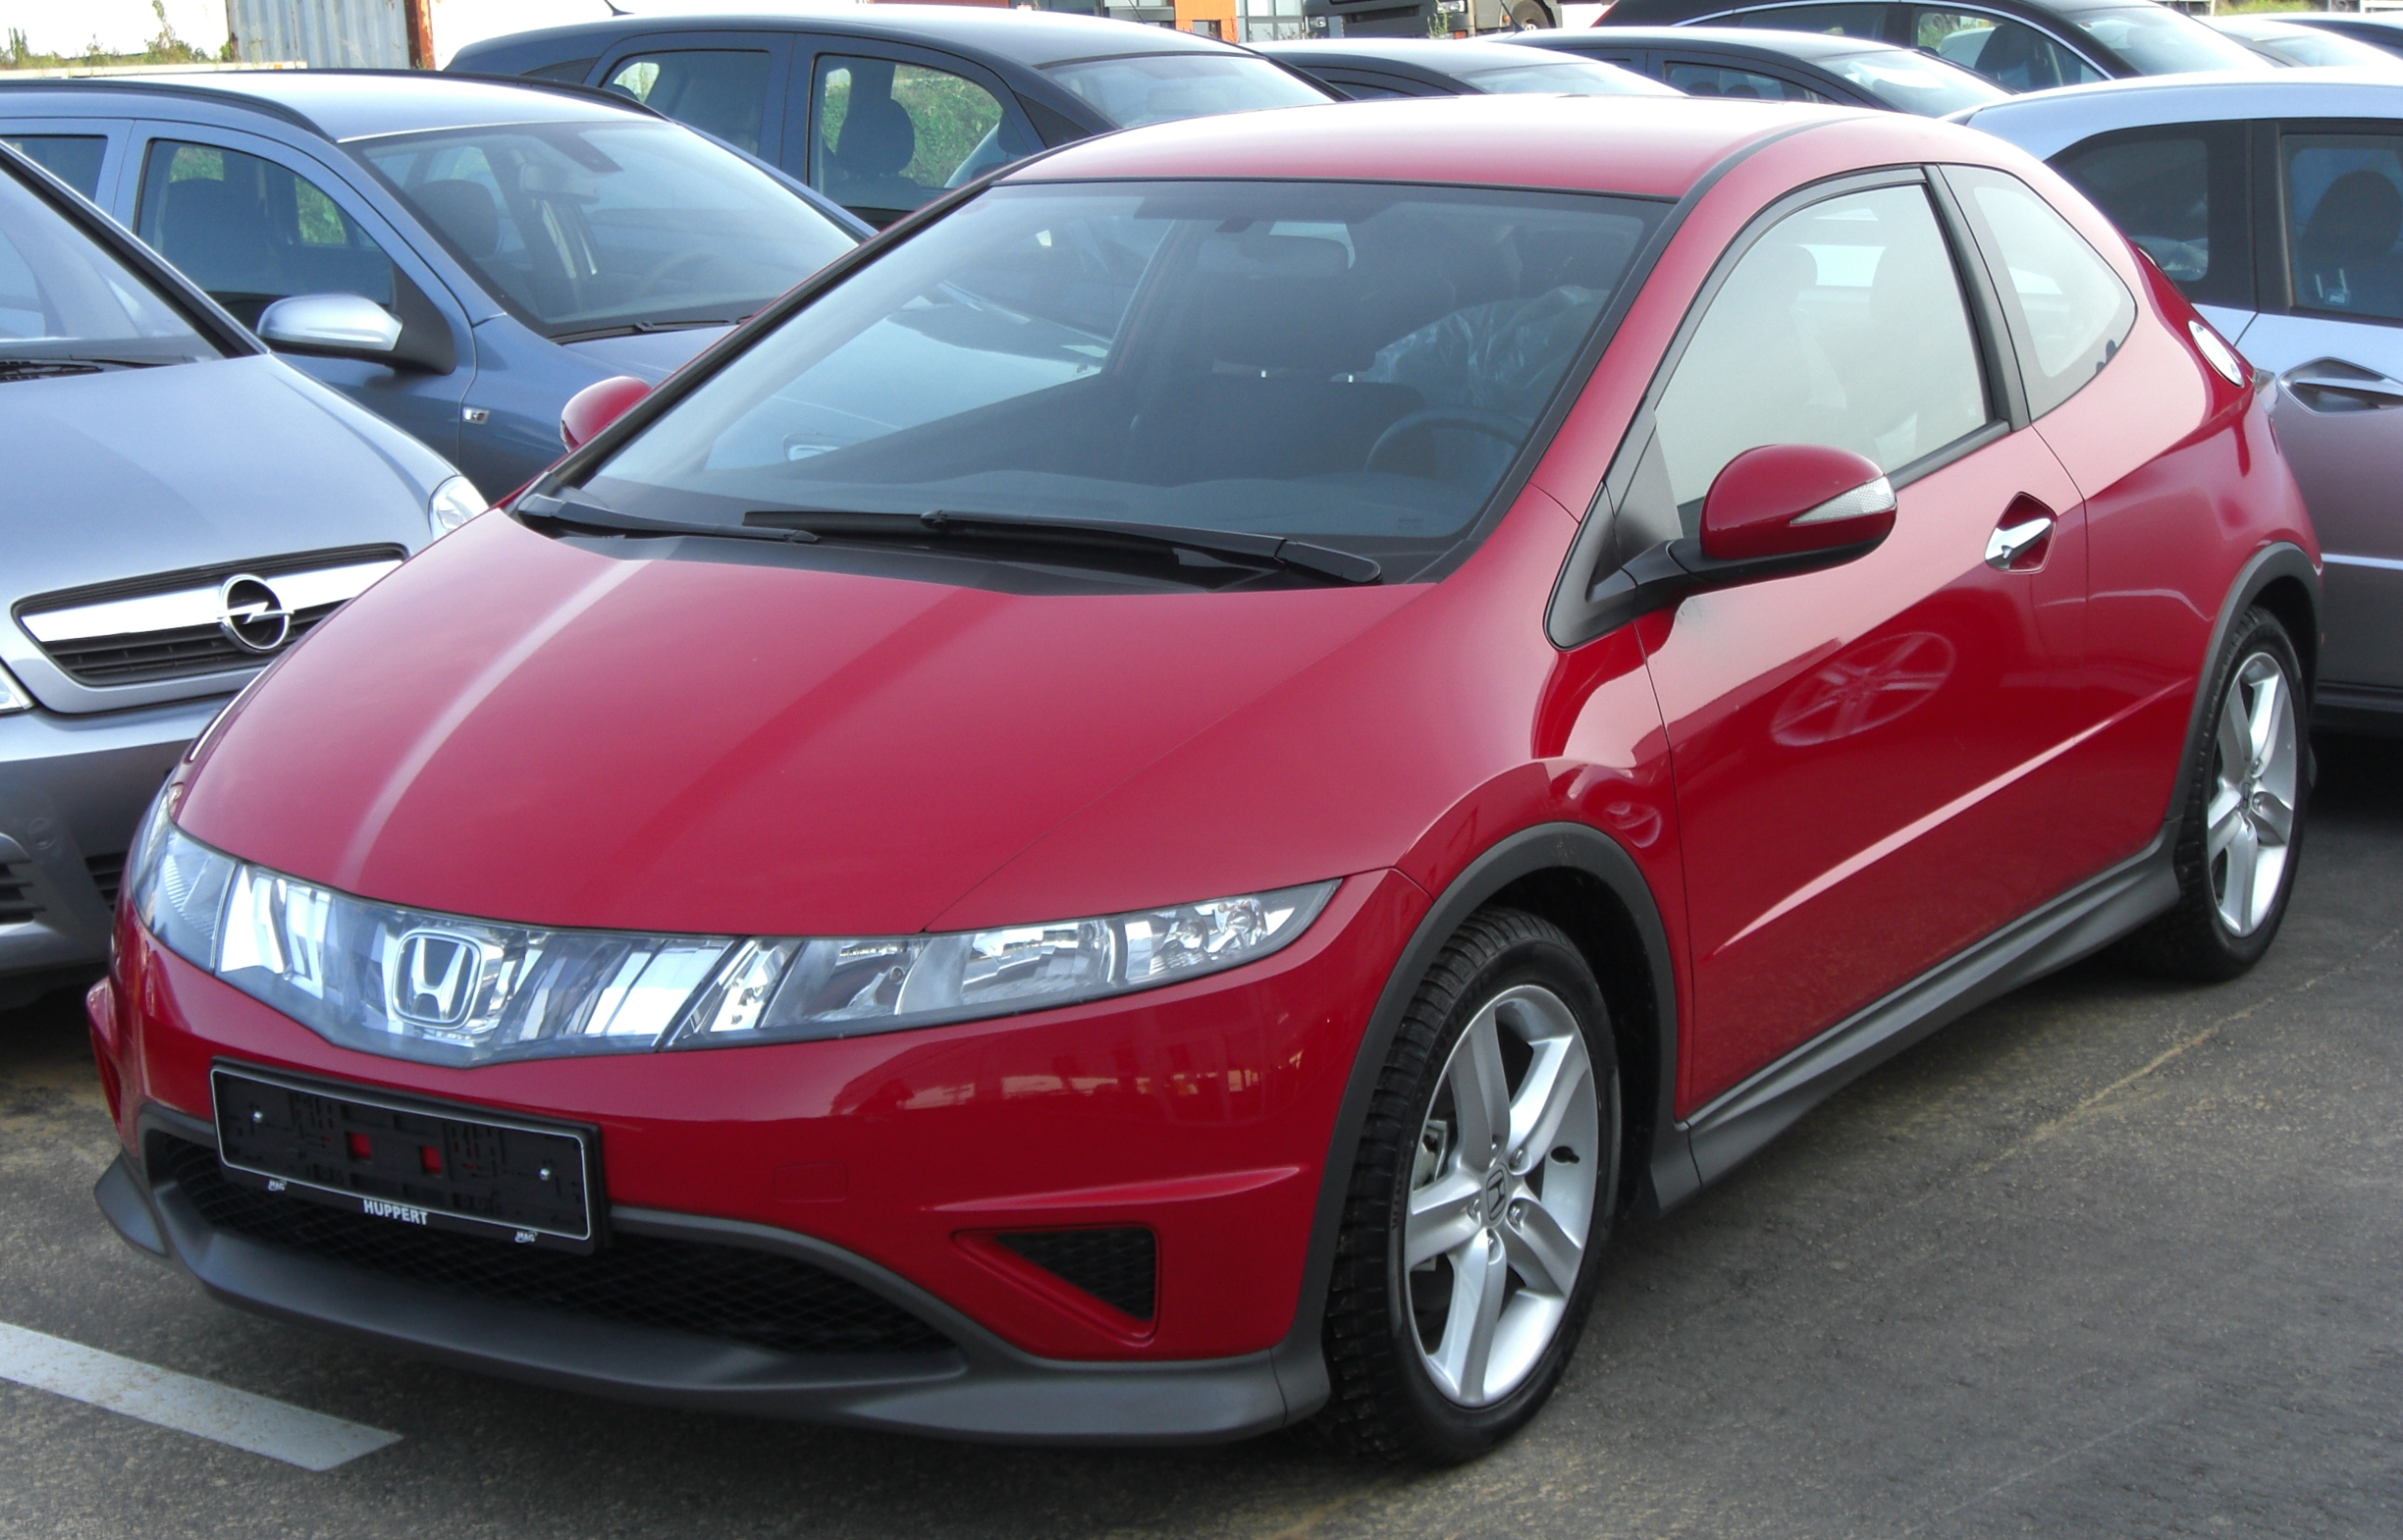 Honda Civic photo 11